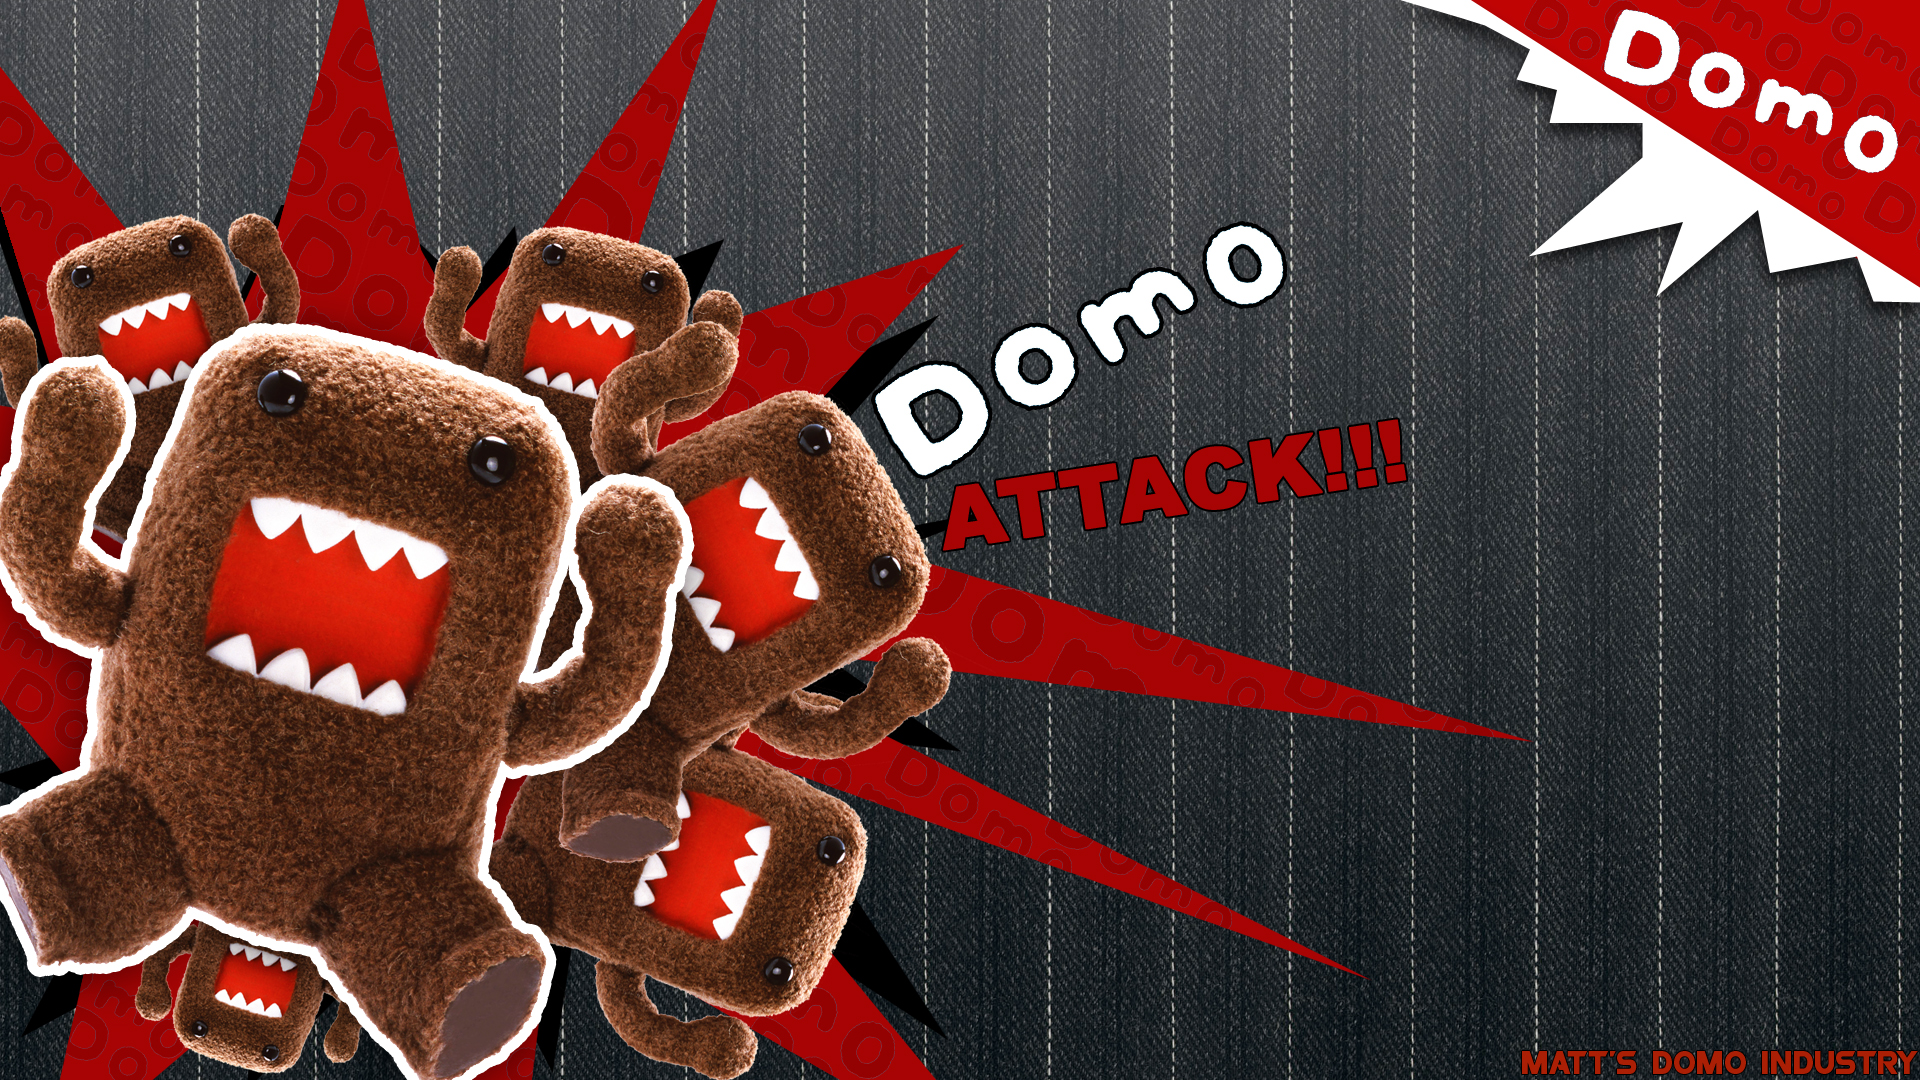 Matts Domo kun Wallpaper 1 by Matt1526 1920x1080